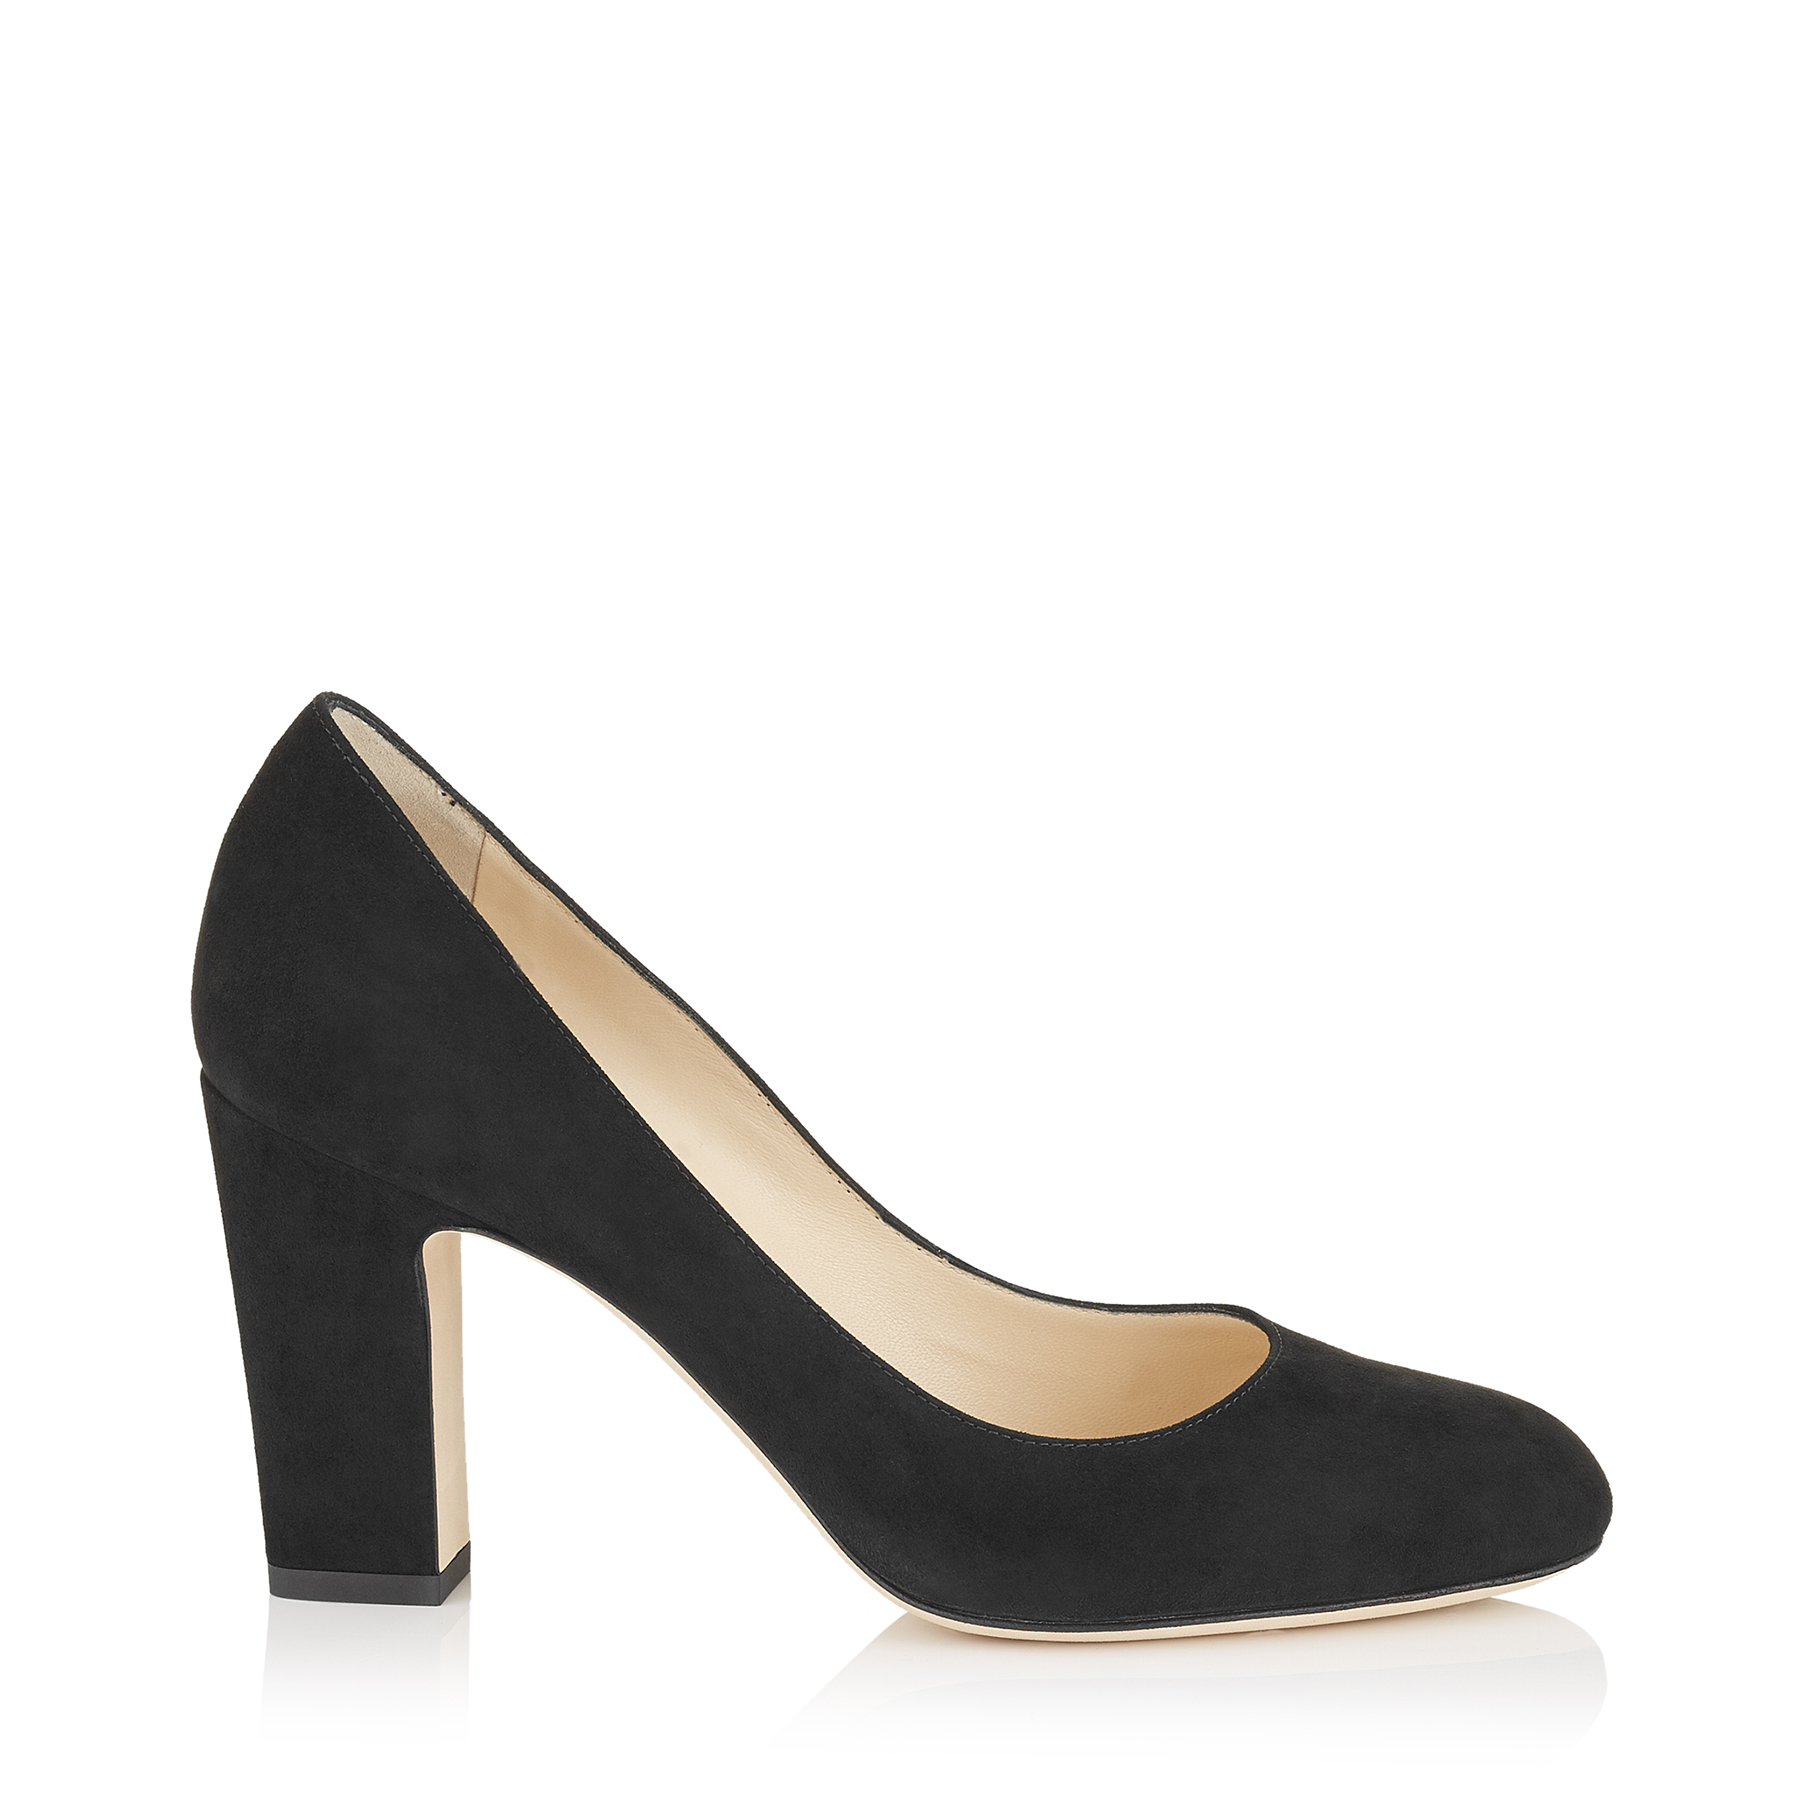 BILLIE 85 Black Suede Round Toe Pumps with Chunky Heel by Jimmy Choo